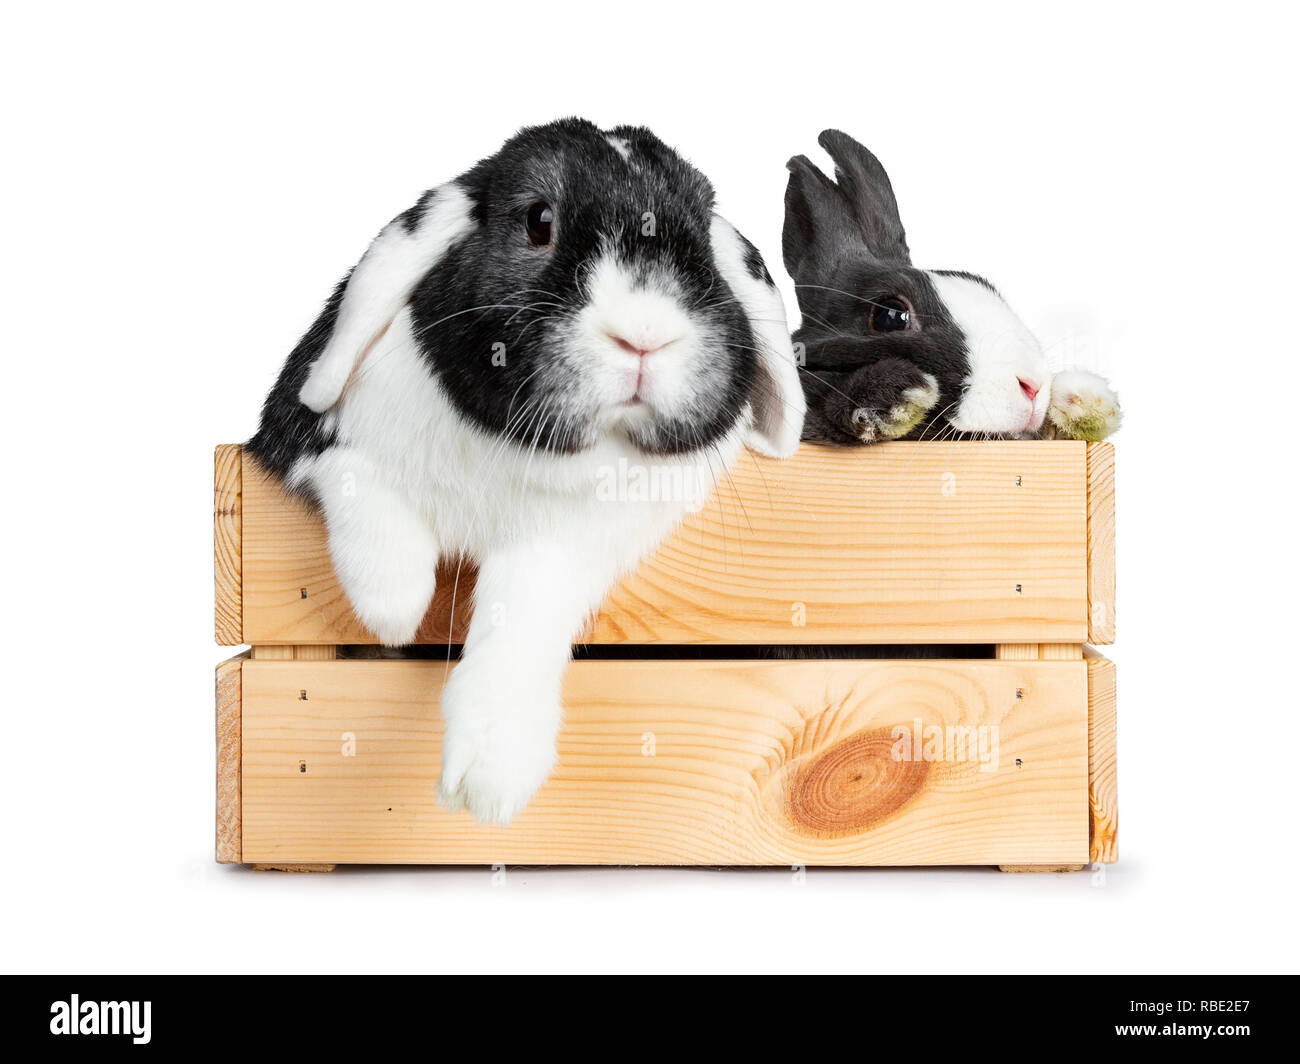 Black And White Rabbit Pictures Stock Photos Amp Black And